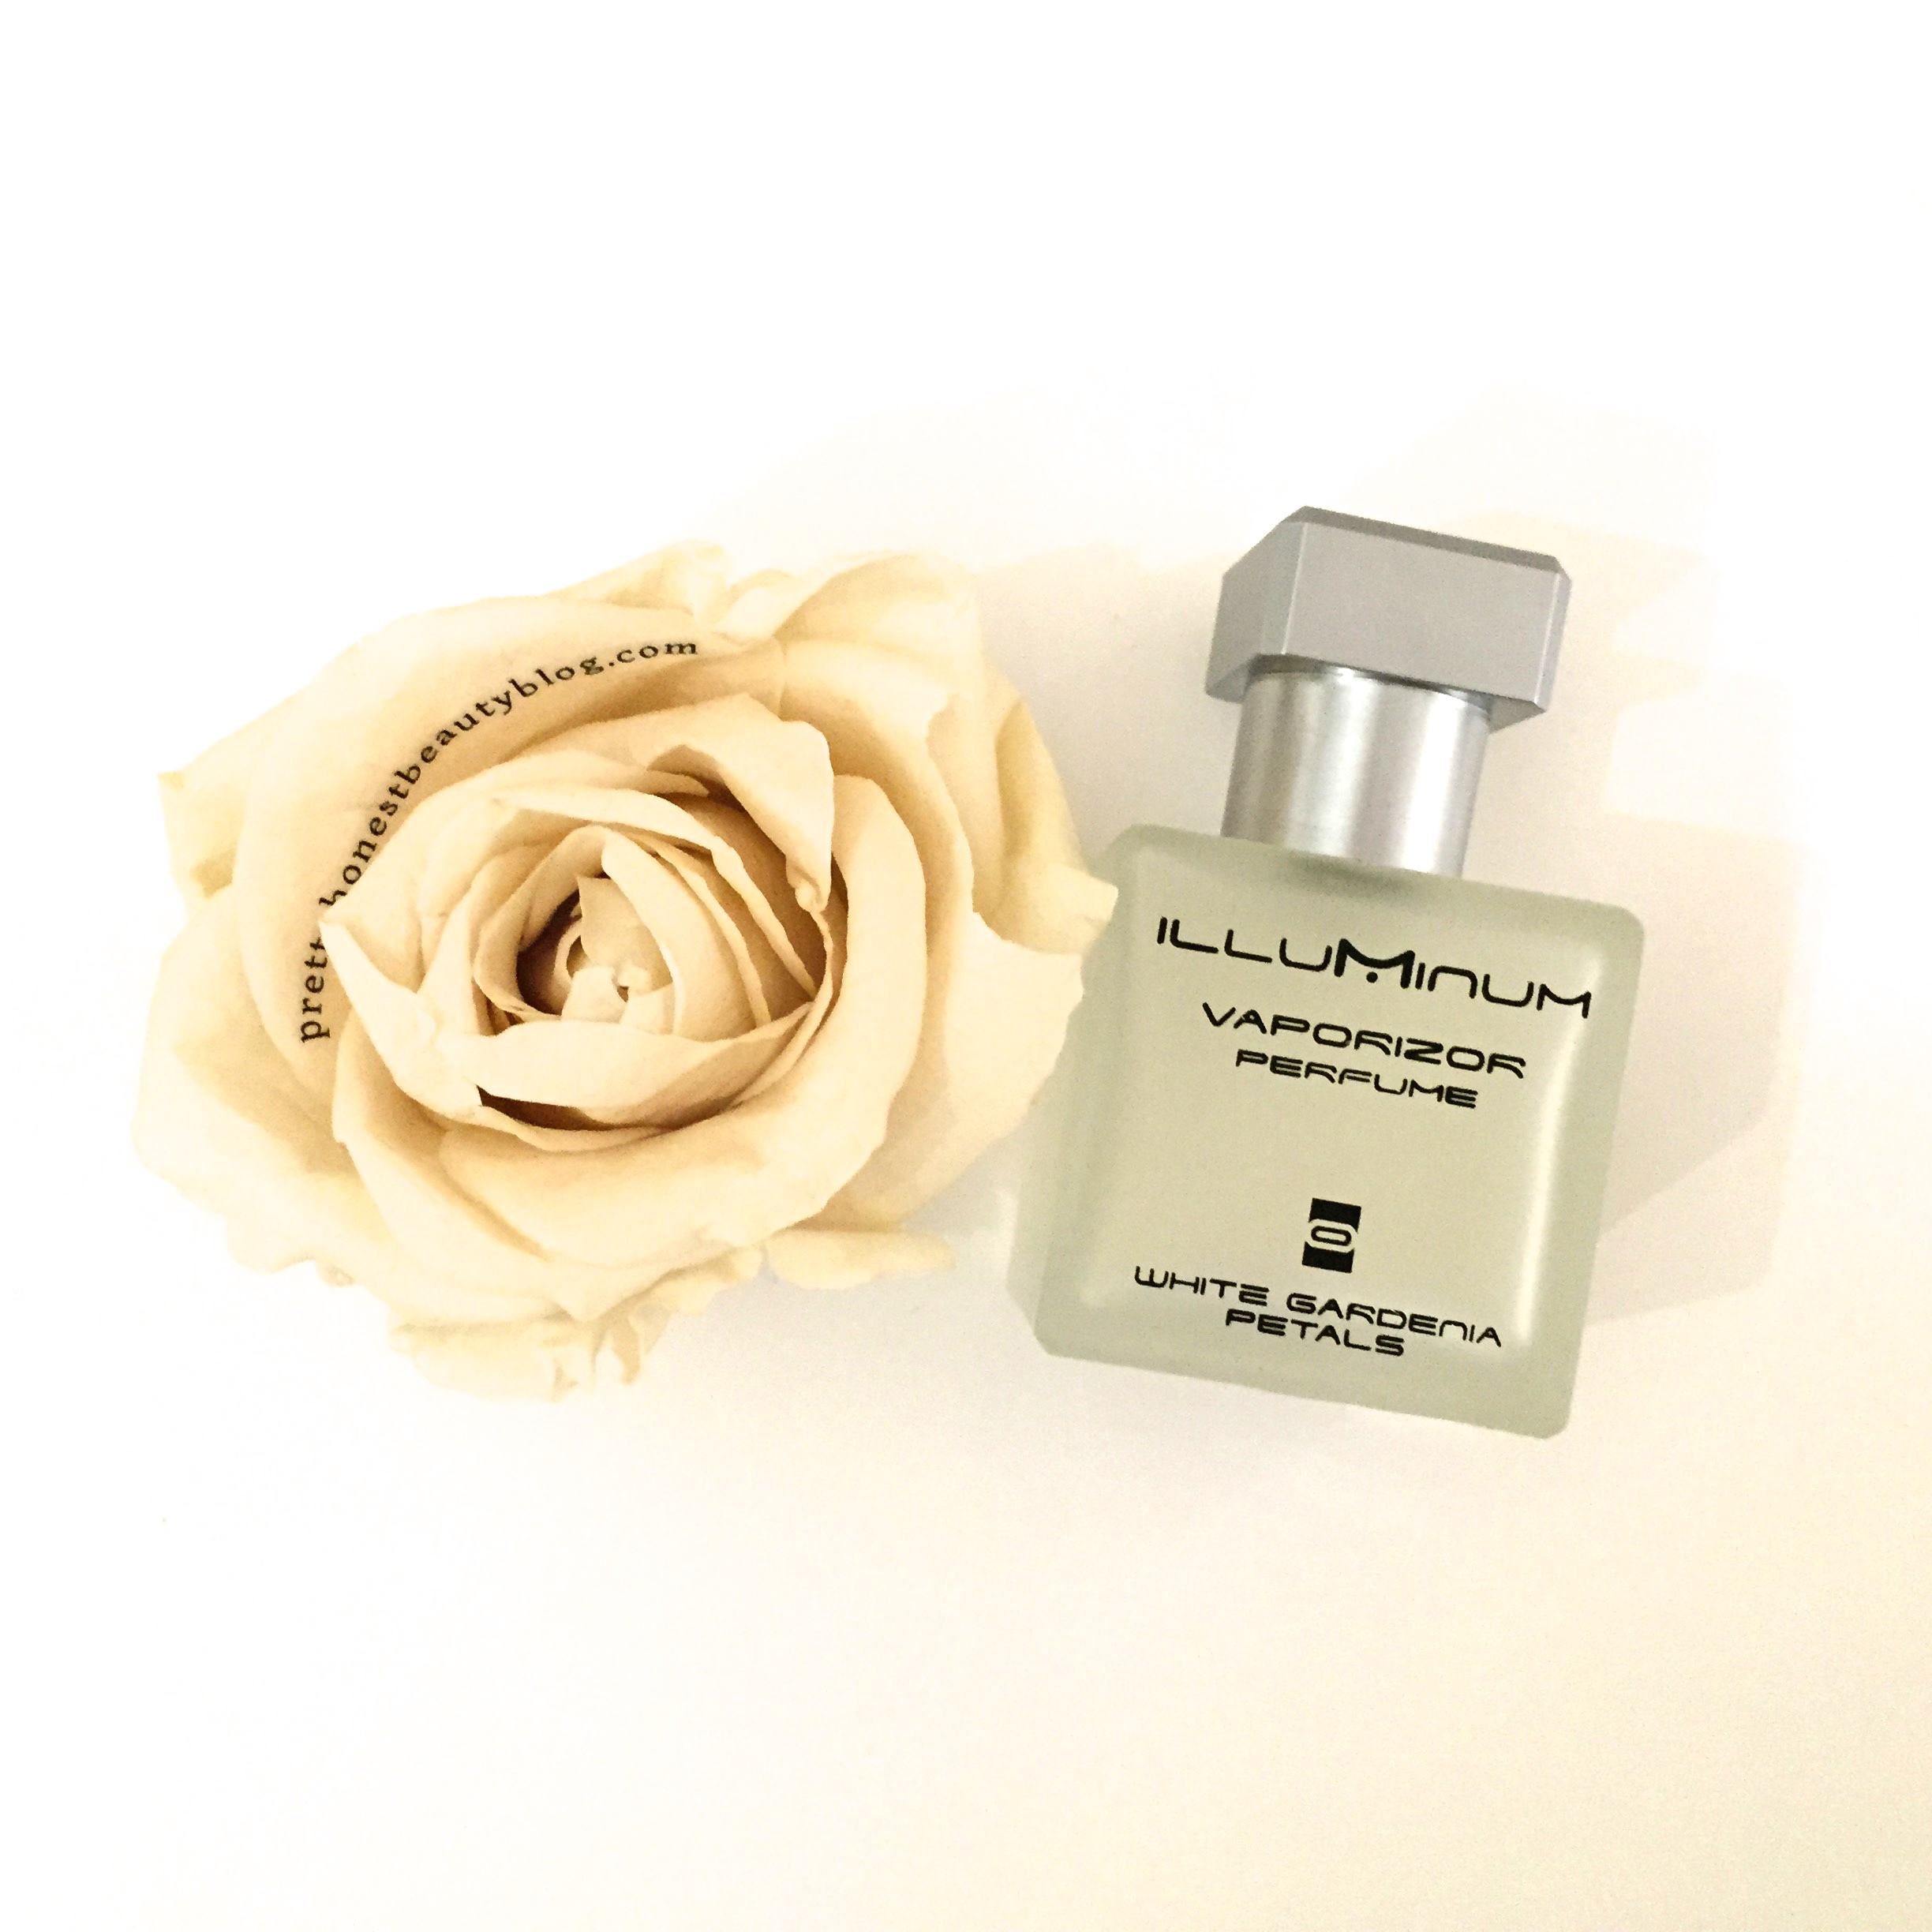 Illuminum Perfume White Gardenia Petals Review